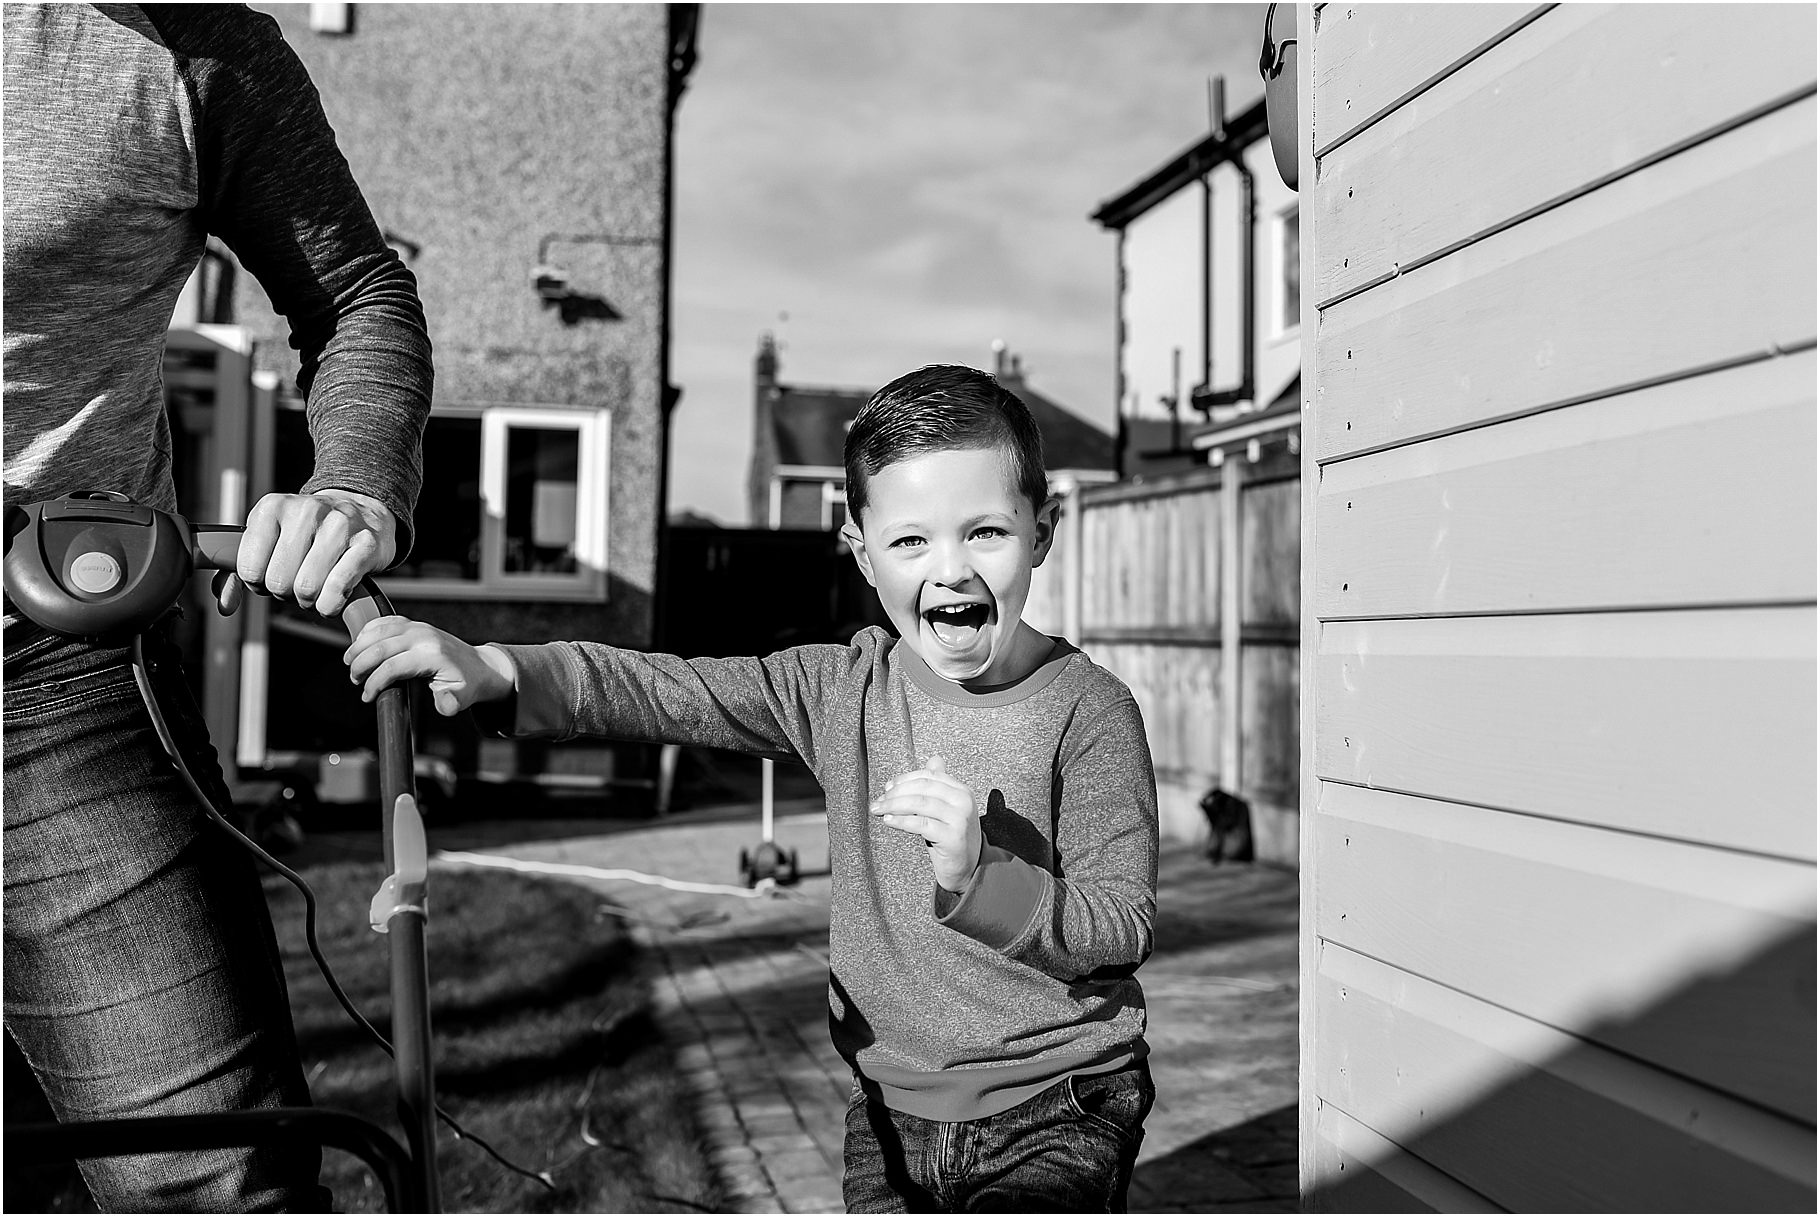 lancashire-family-photography-steve-april-jack-ollie-theo-07.jpg